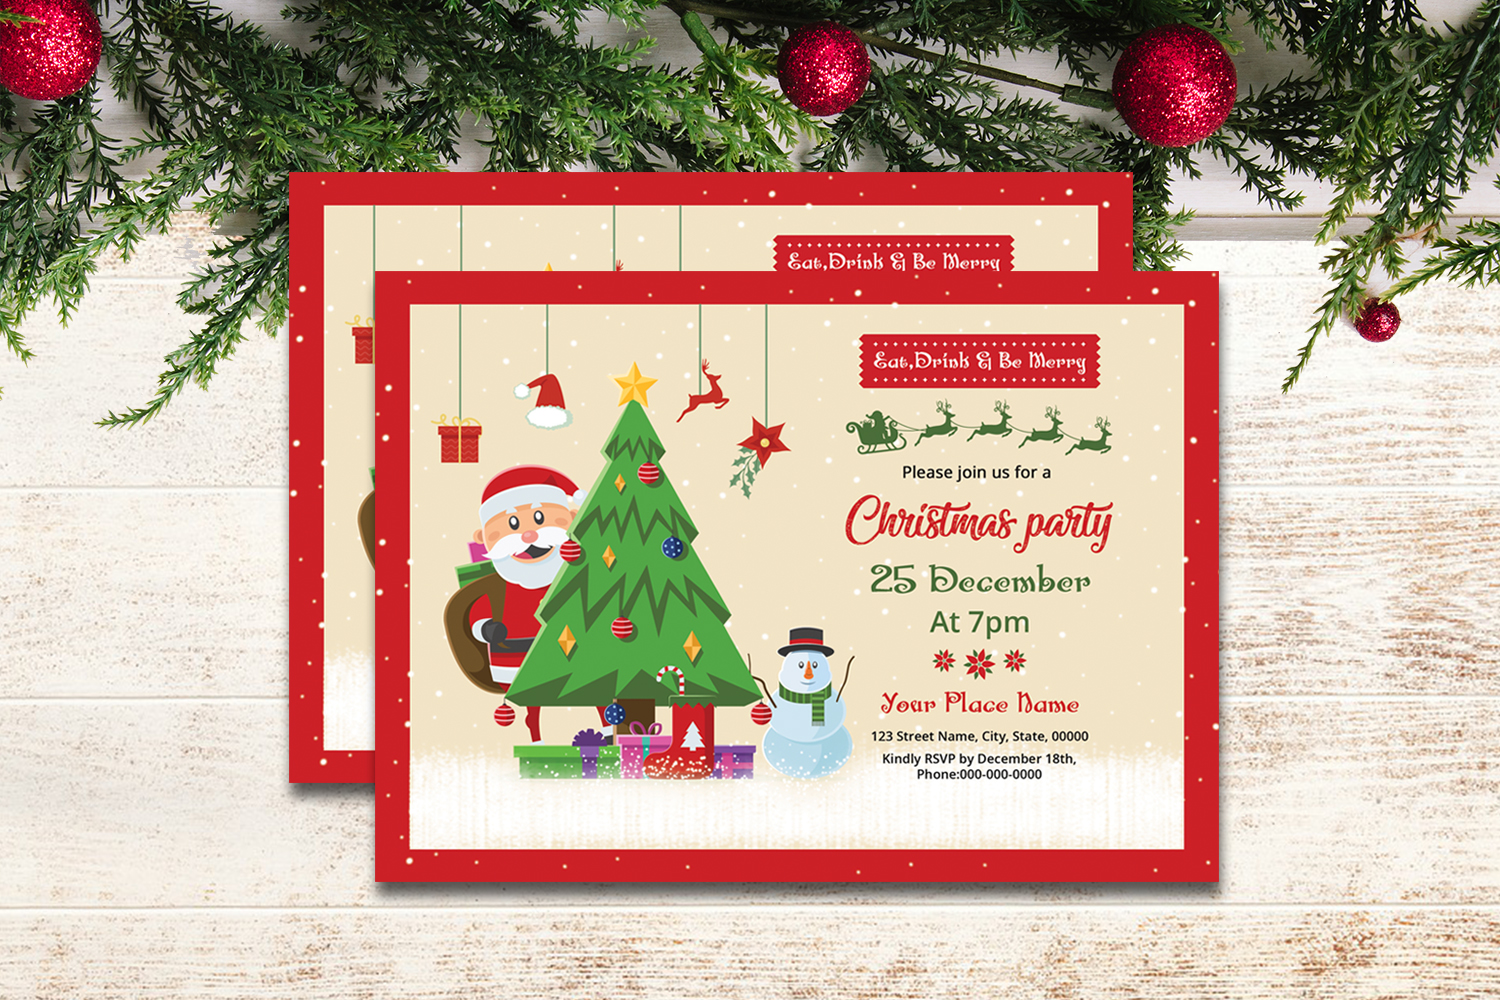 Christmas Party Invitation example image 2